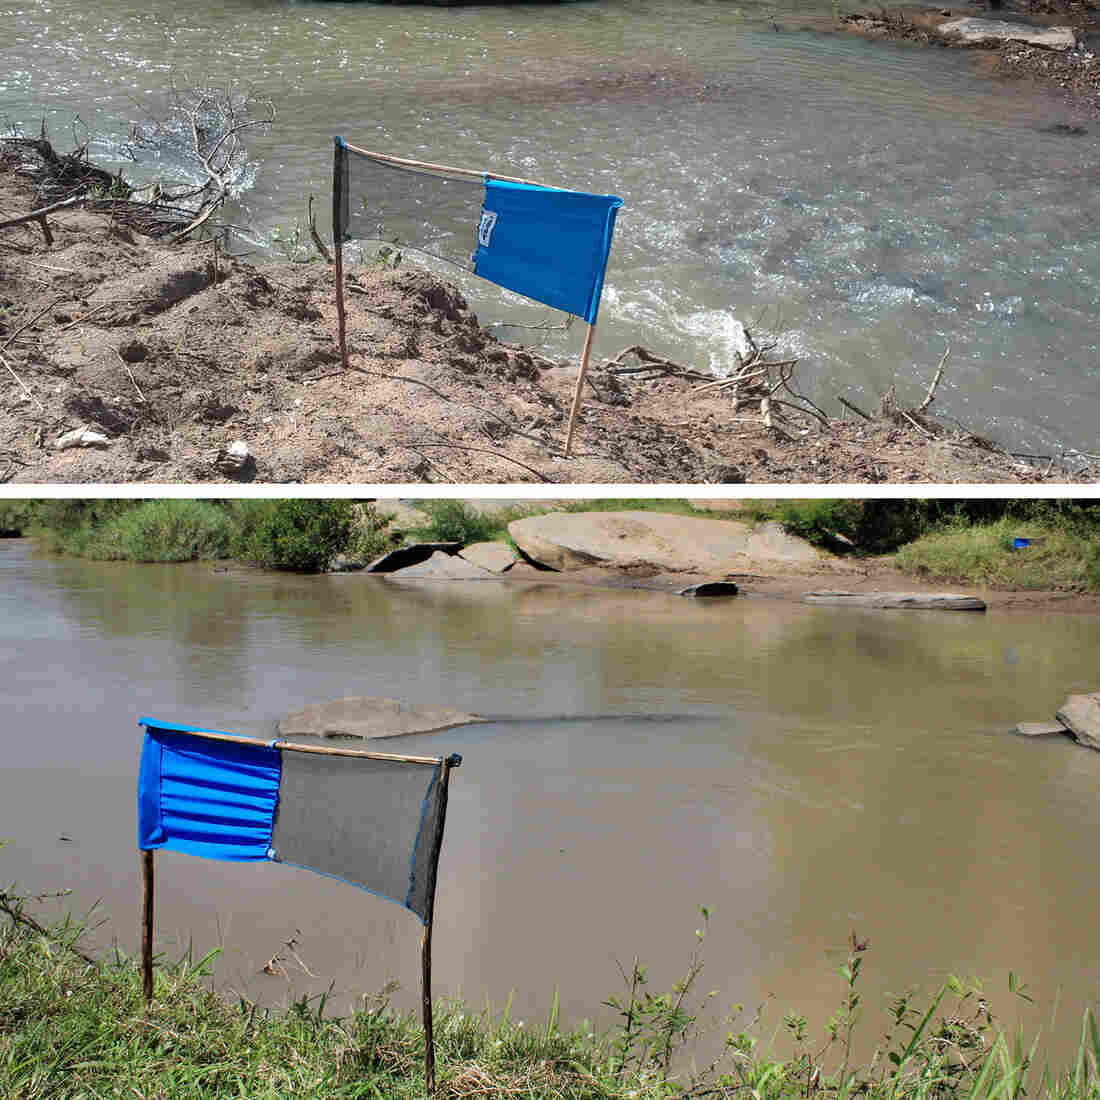 In The Fight Against Tsetse Flies, Blue Is The New Black